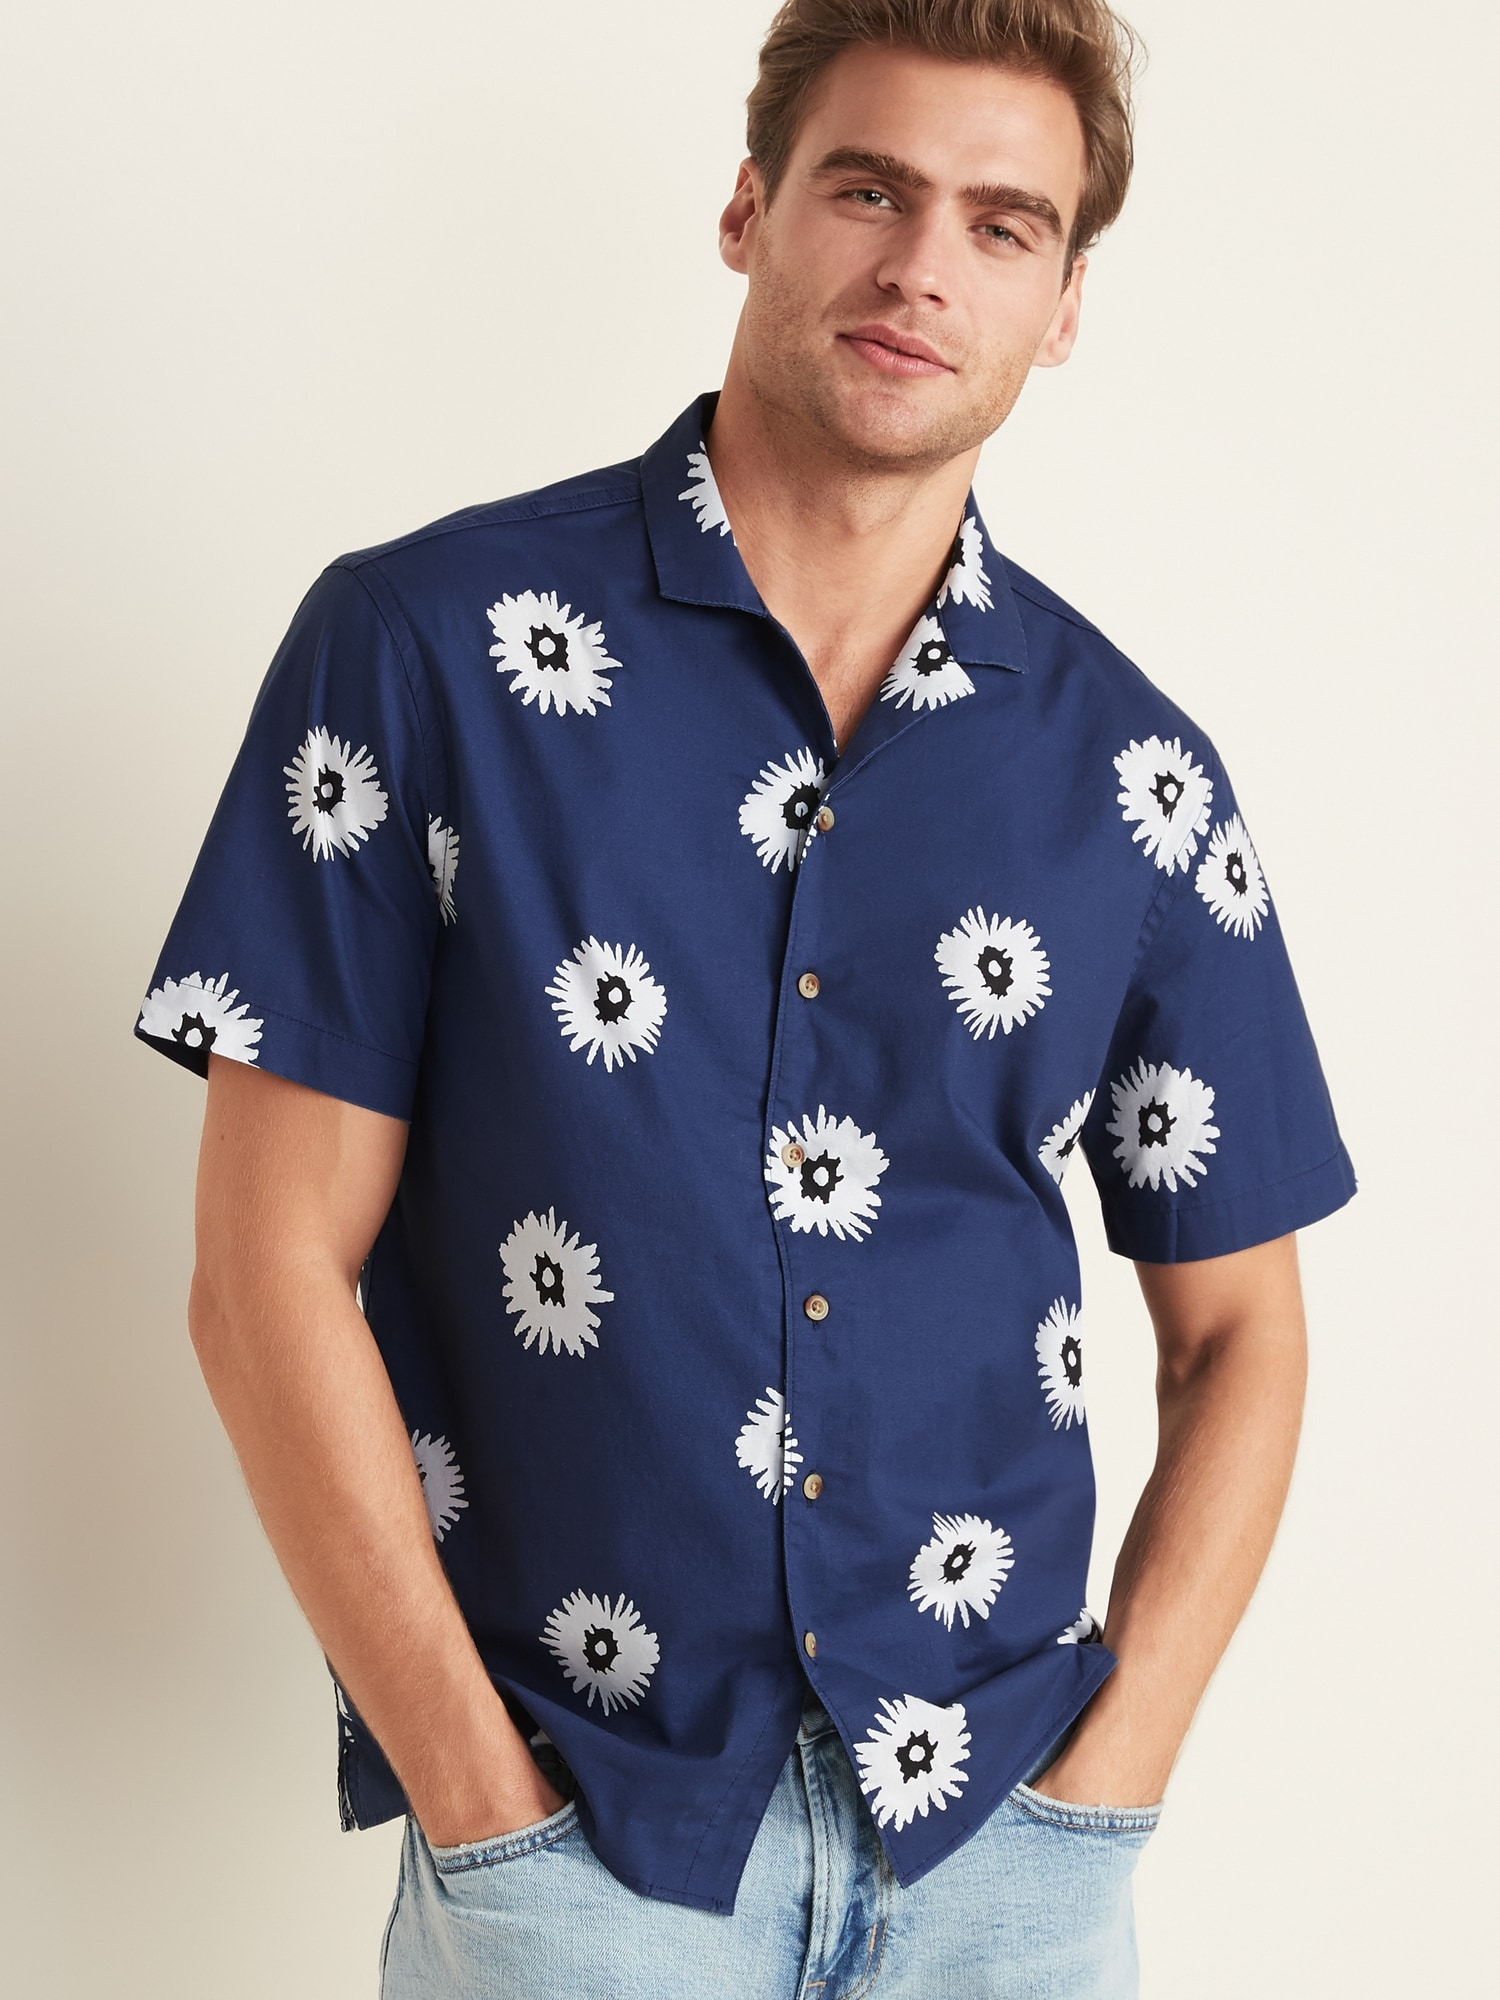 Regular Fit Built In Flex Printed Getaway Shirt For Men by Old Navy